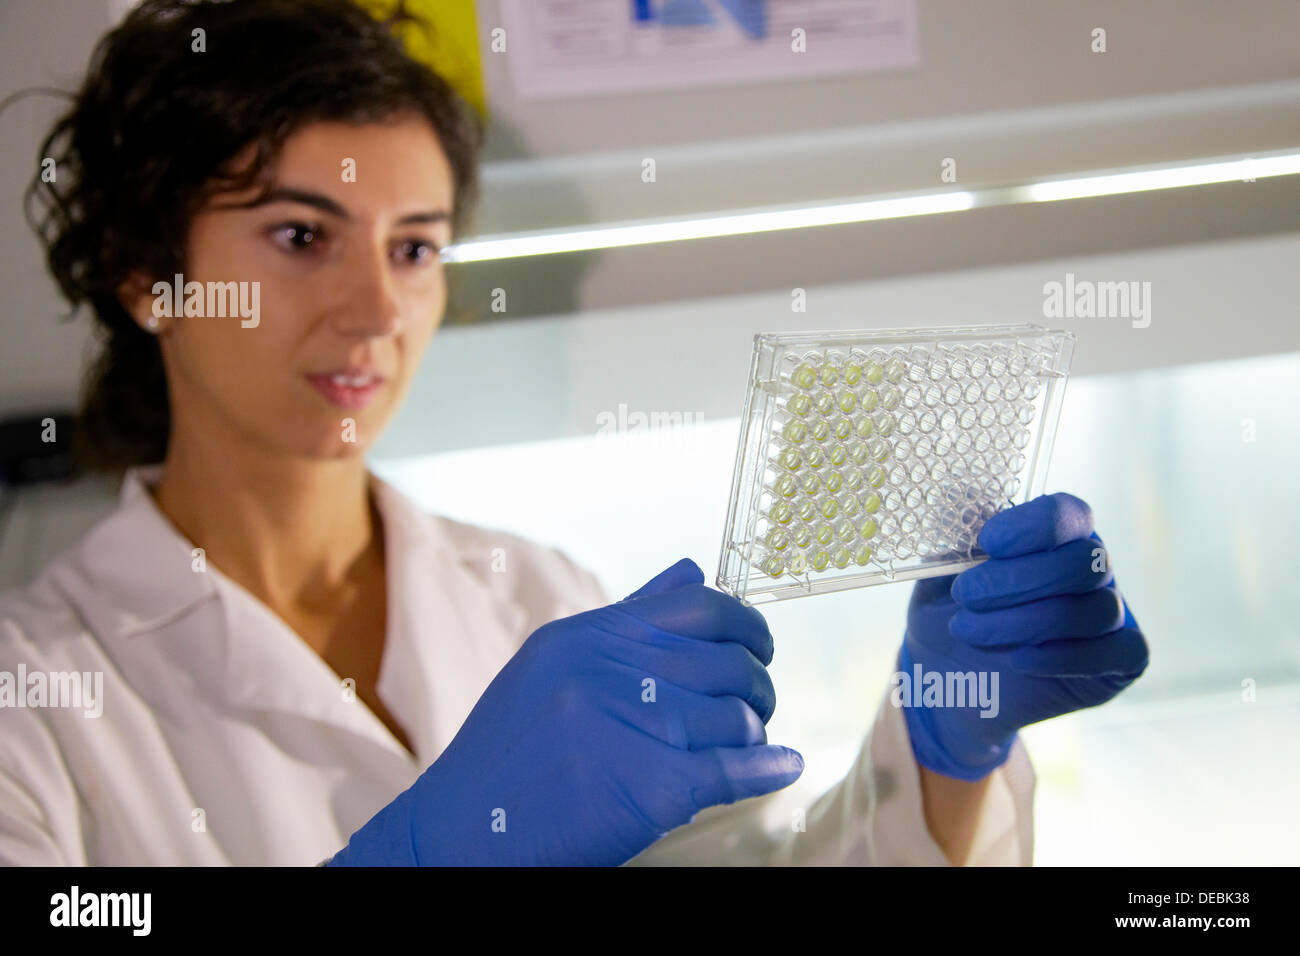 Cytotoxicity studies  Multiwell plate observation of the evaluation of the toxicity of compounds in cell lines, Cell Culture - Stock Image